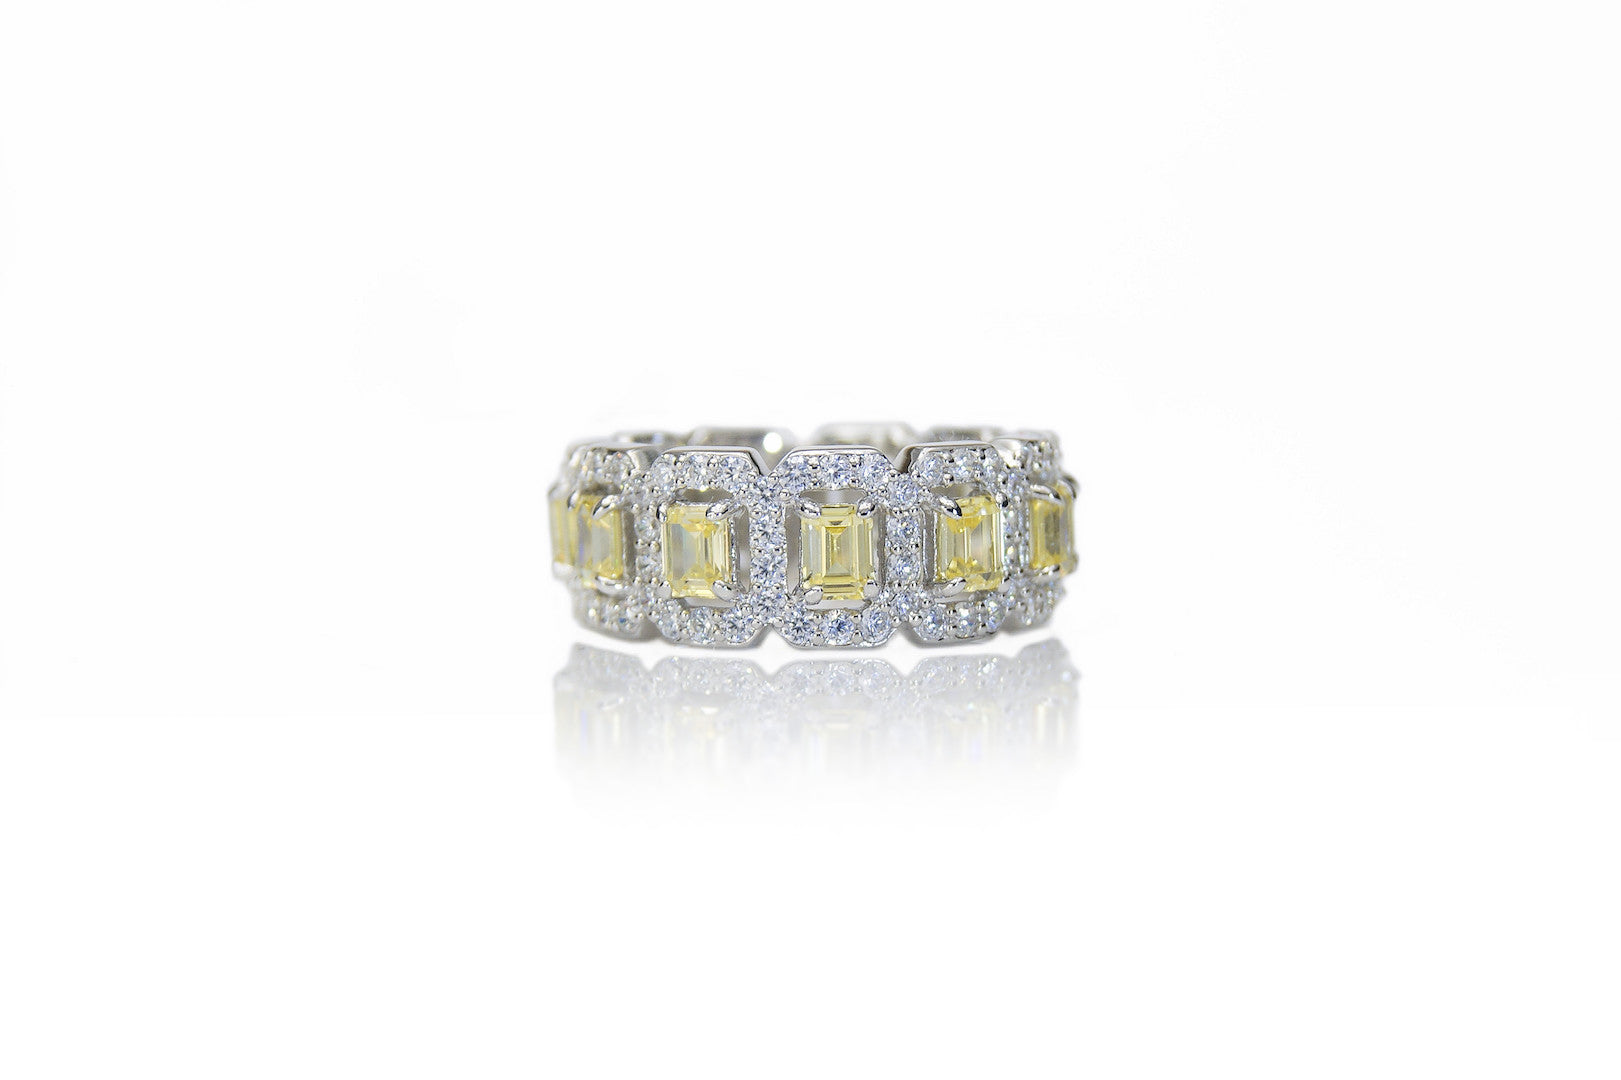 'LUANA' Emerald-Cut Citrine & DiamondB Pavé Band Ring | BAND RINGS | BECKY JEWELRY